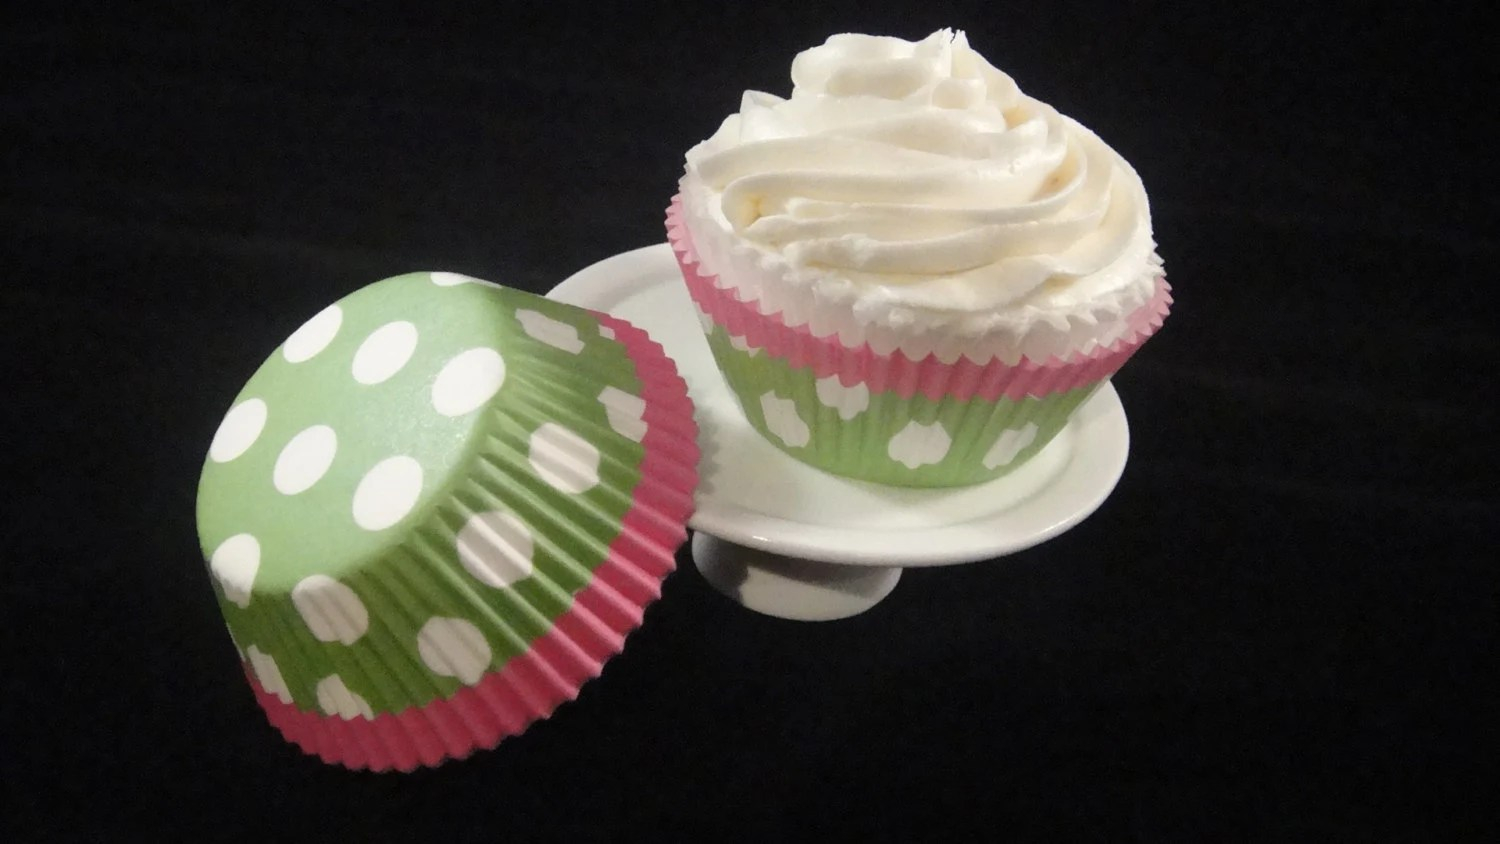 Hot Pink And Bright Green With Polka Dots Cupcake Liners